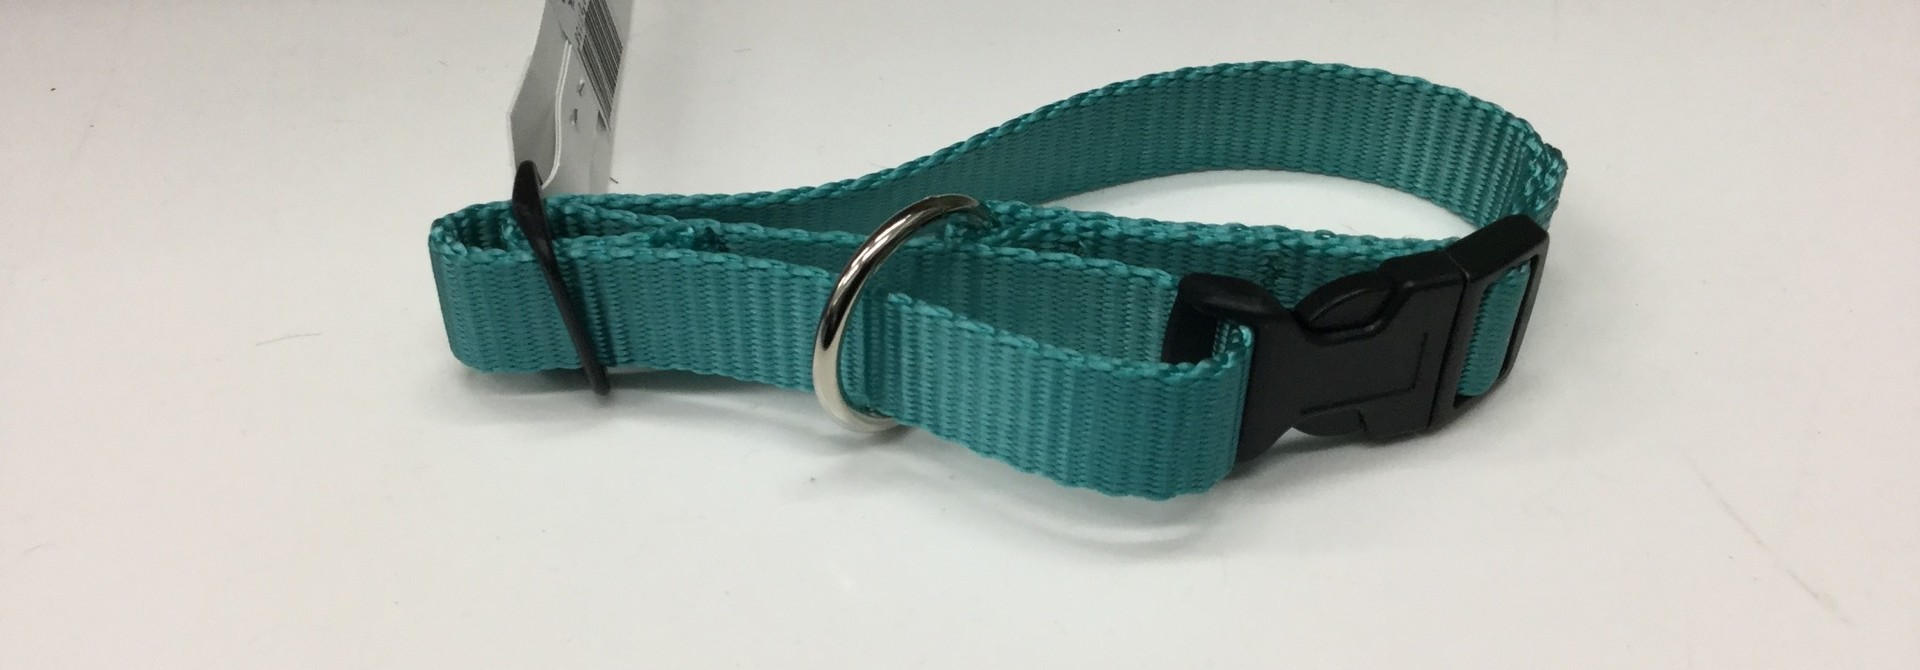 "3/4"" Adjustable Dog Collar with Composite Buckle Teal"